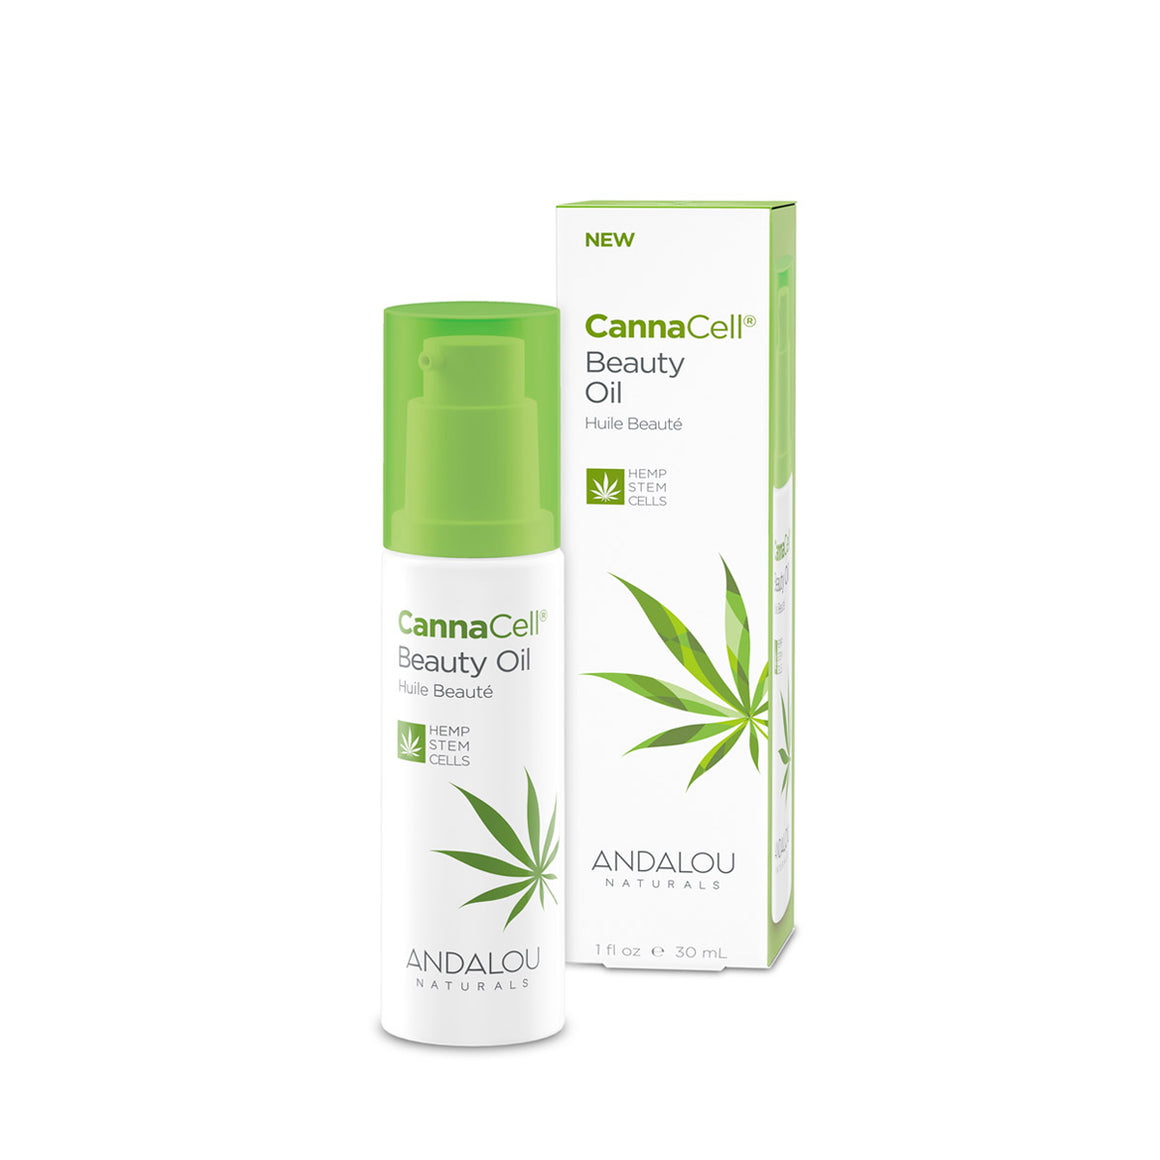 CannaCell® Beauty Oil